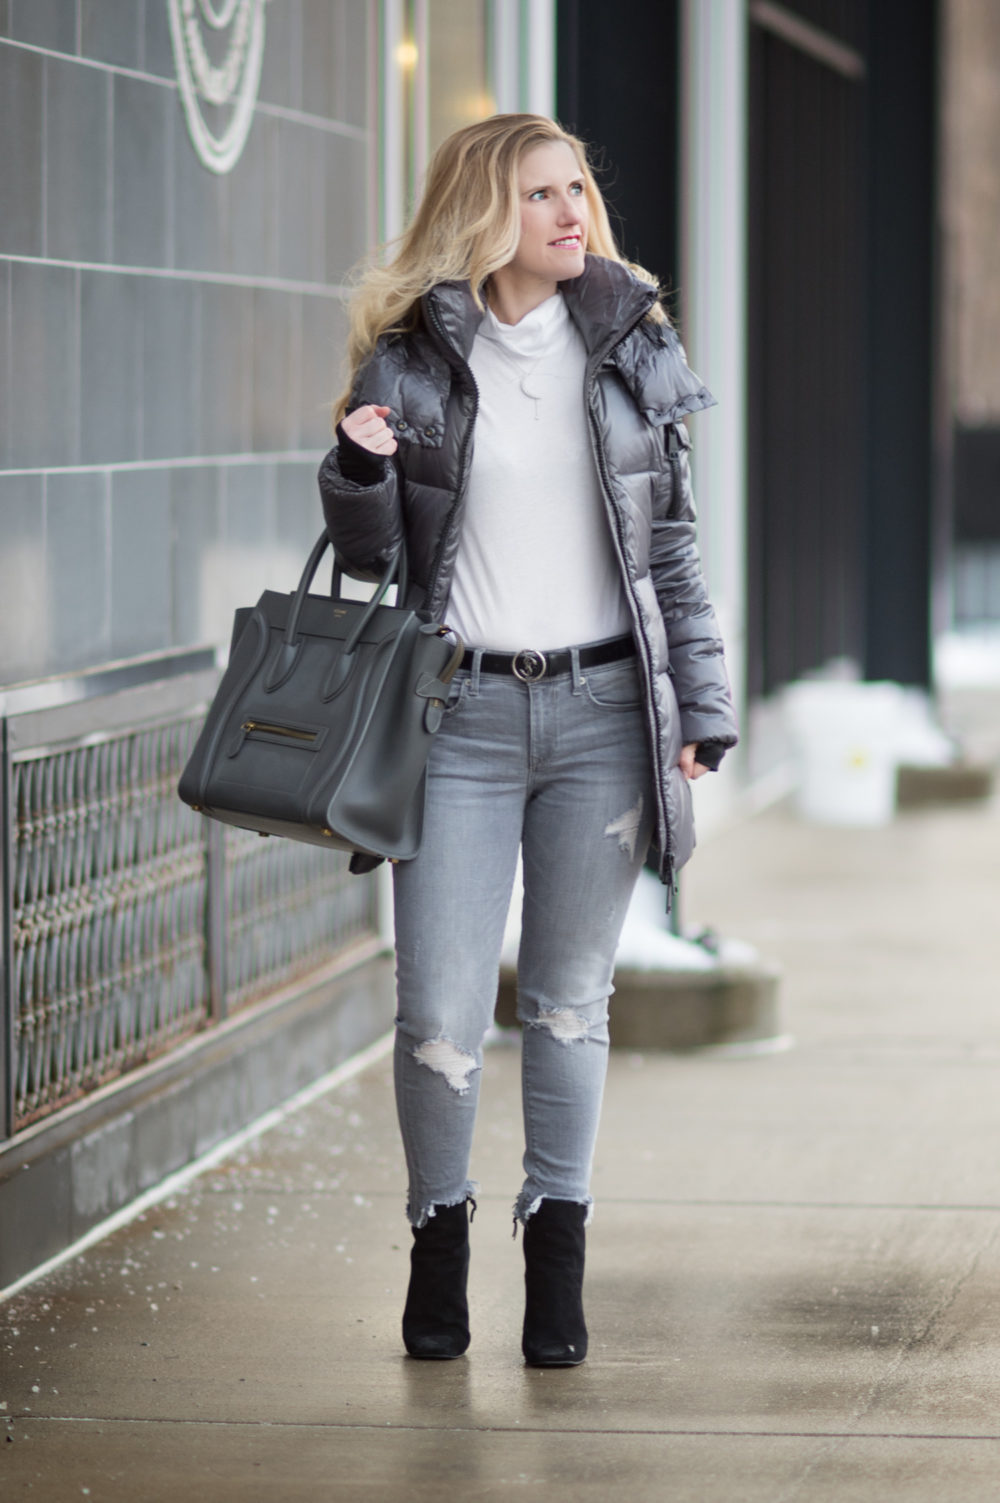 ashion for Petite Women | SAM New Soho Down Coat | Express Gray Mid Rise Destroyed Ankle Jeans | Celine Luggage Tote | Click to Read More...